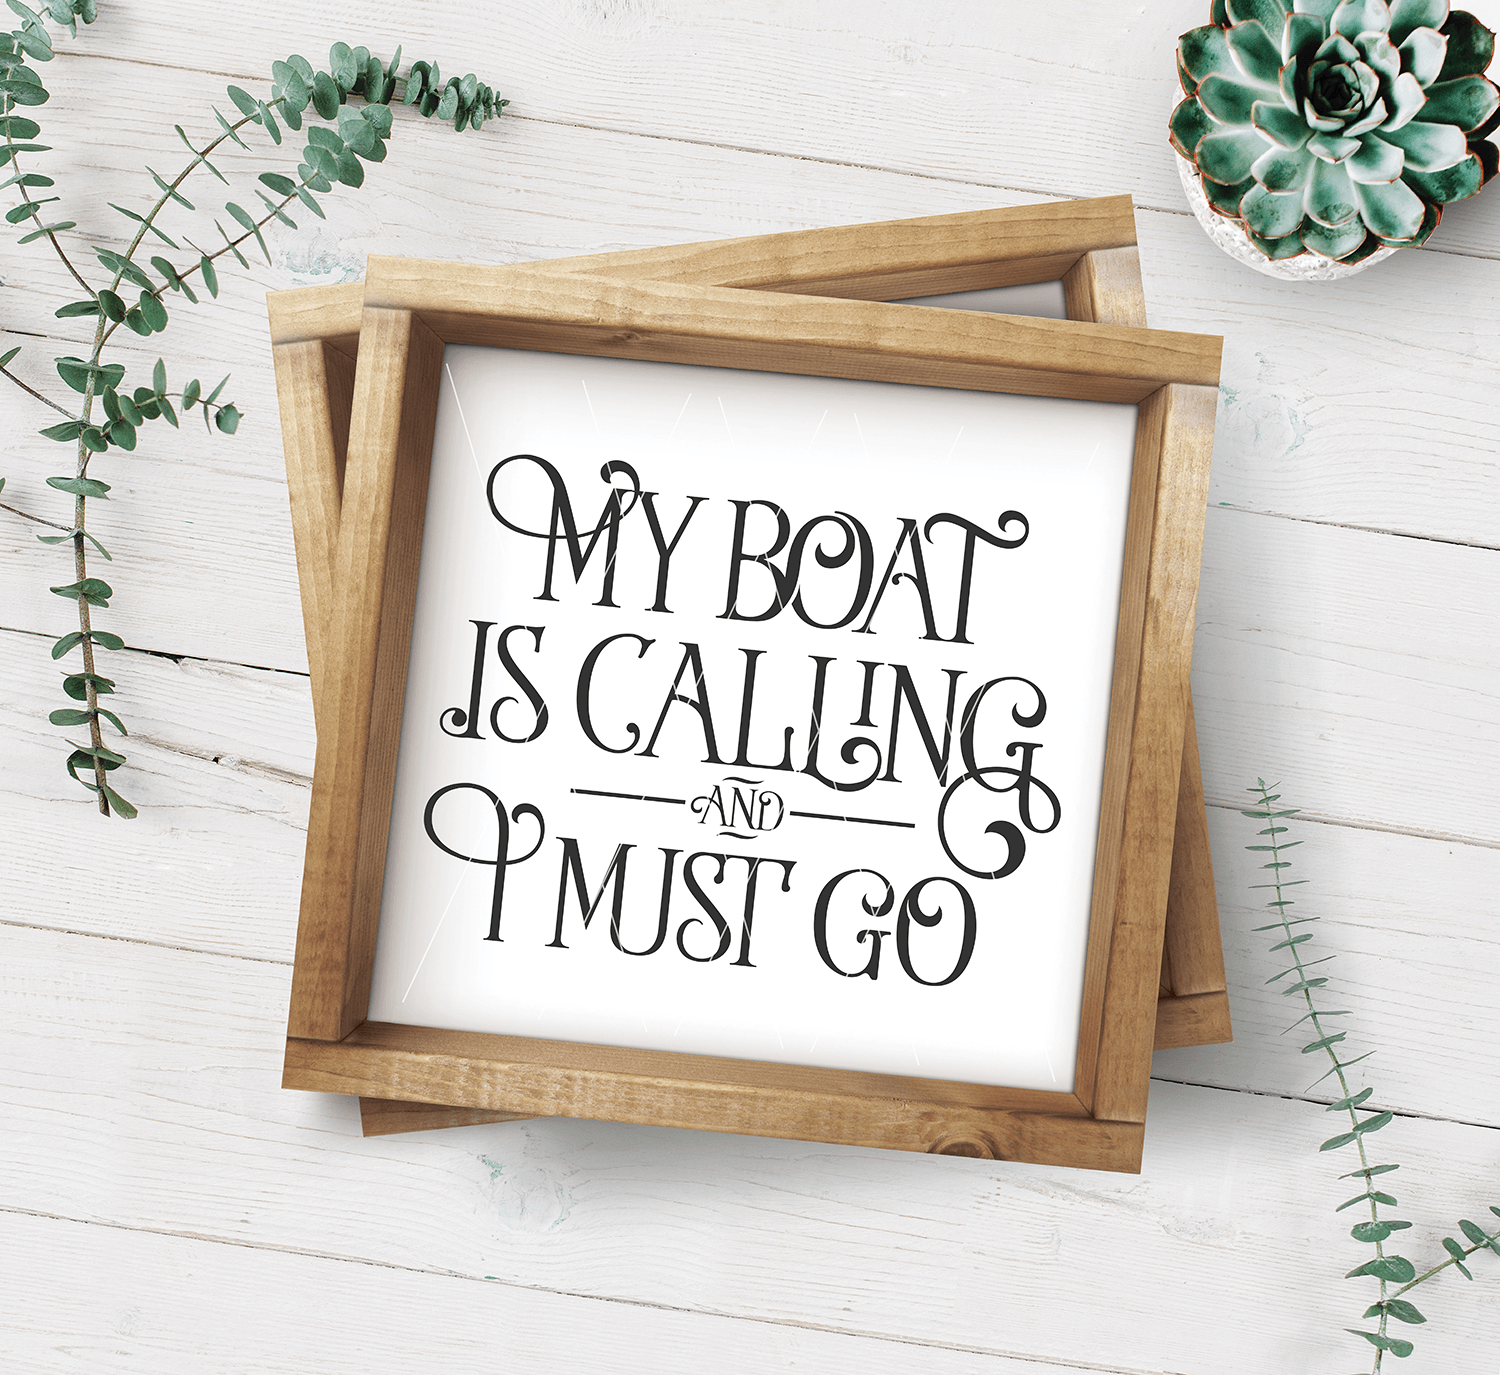 My Boat Is Calling And I Must Go SVG File - Commercial Use SVG Files